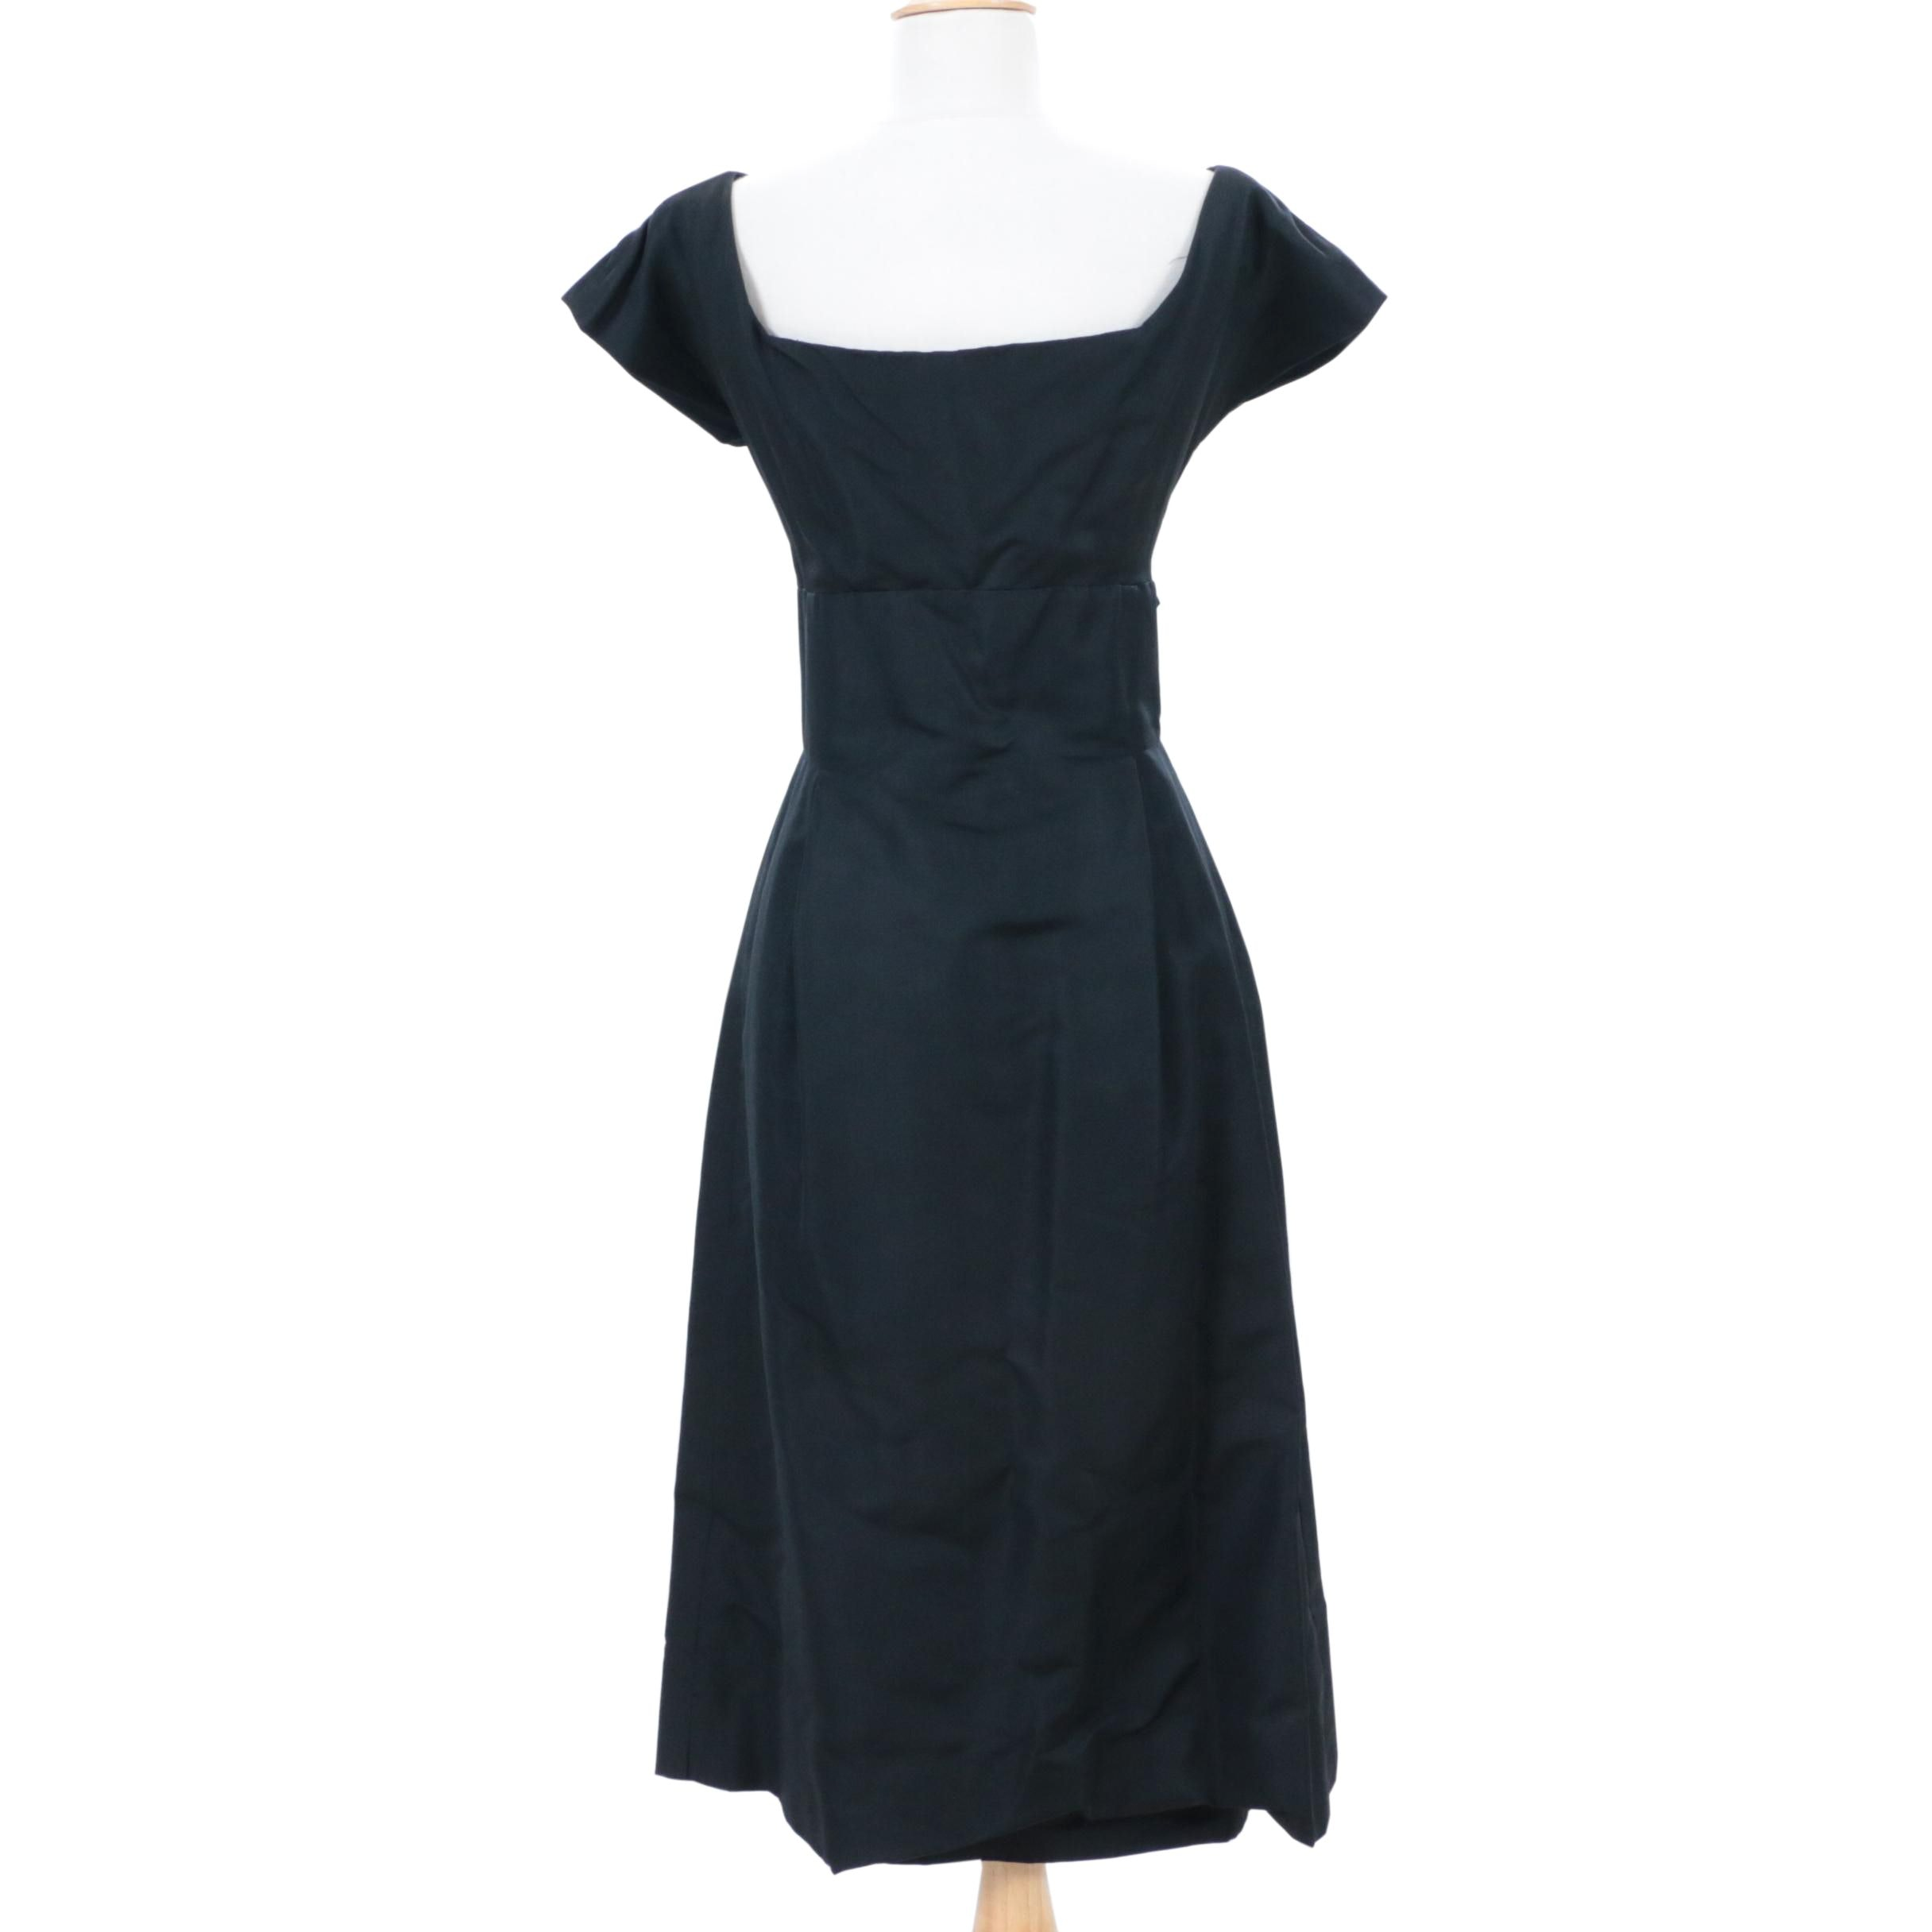 Christian Dior New York Black Grosgrain Silk Cocktail Dress, 1950s Vintage